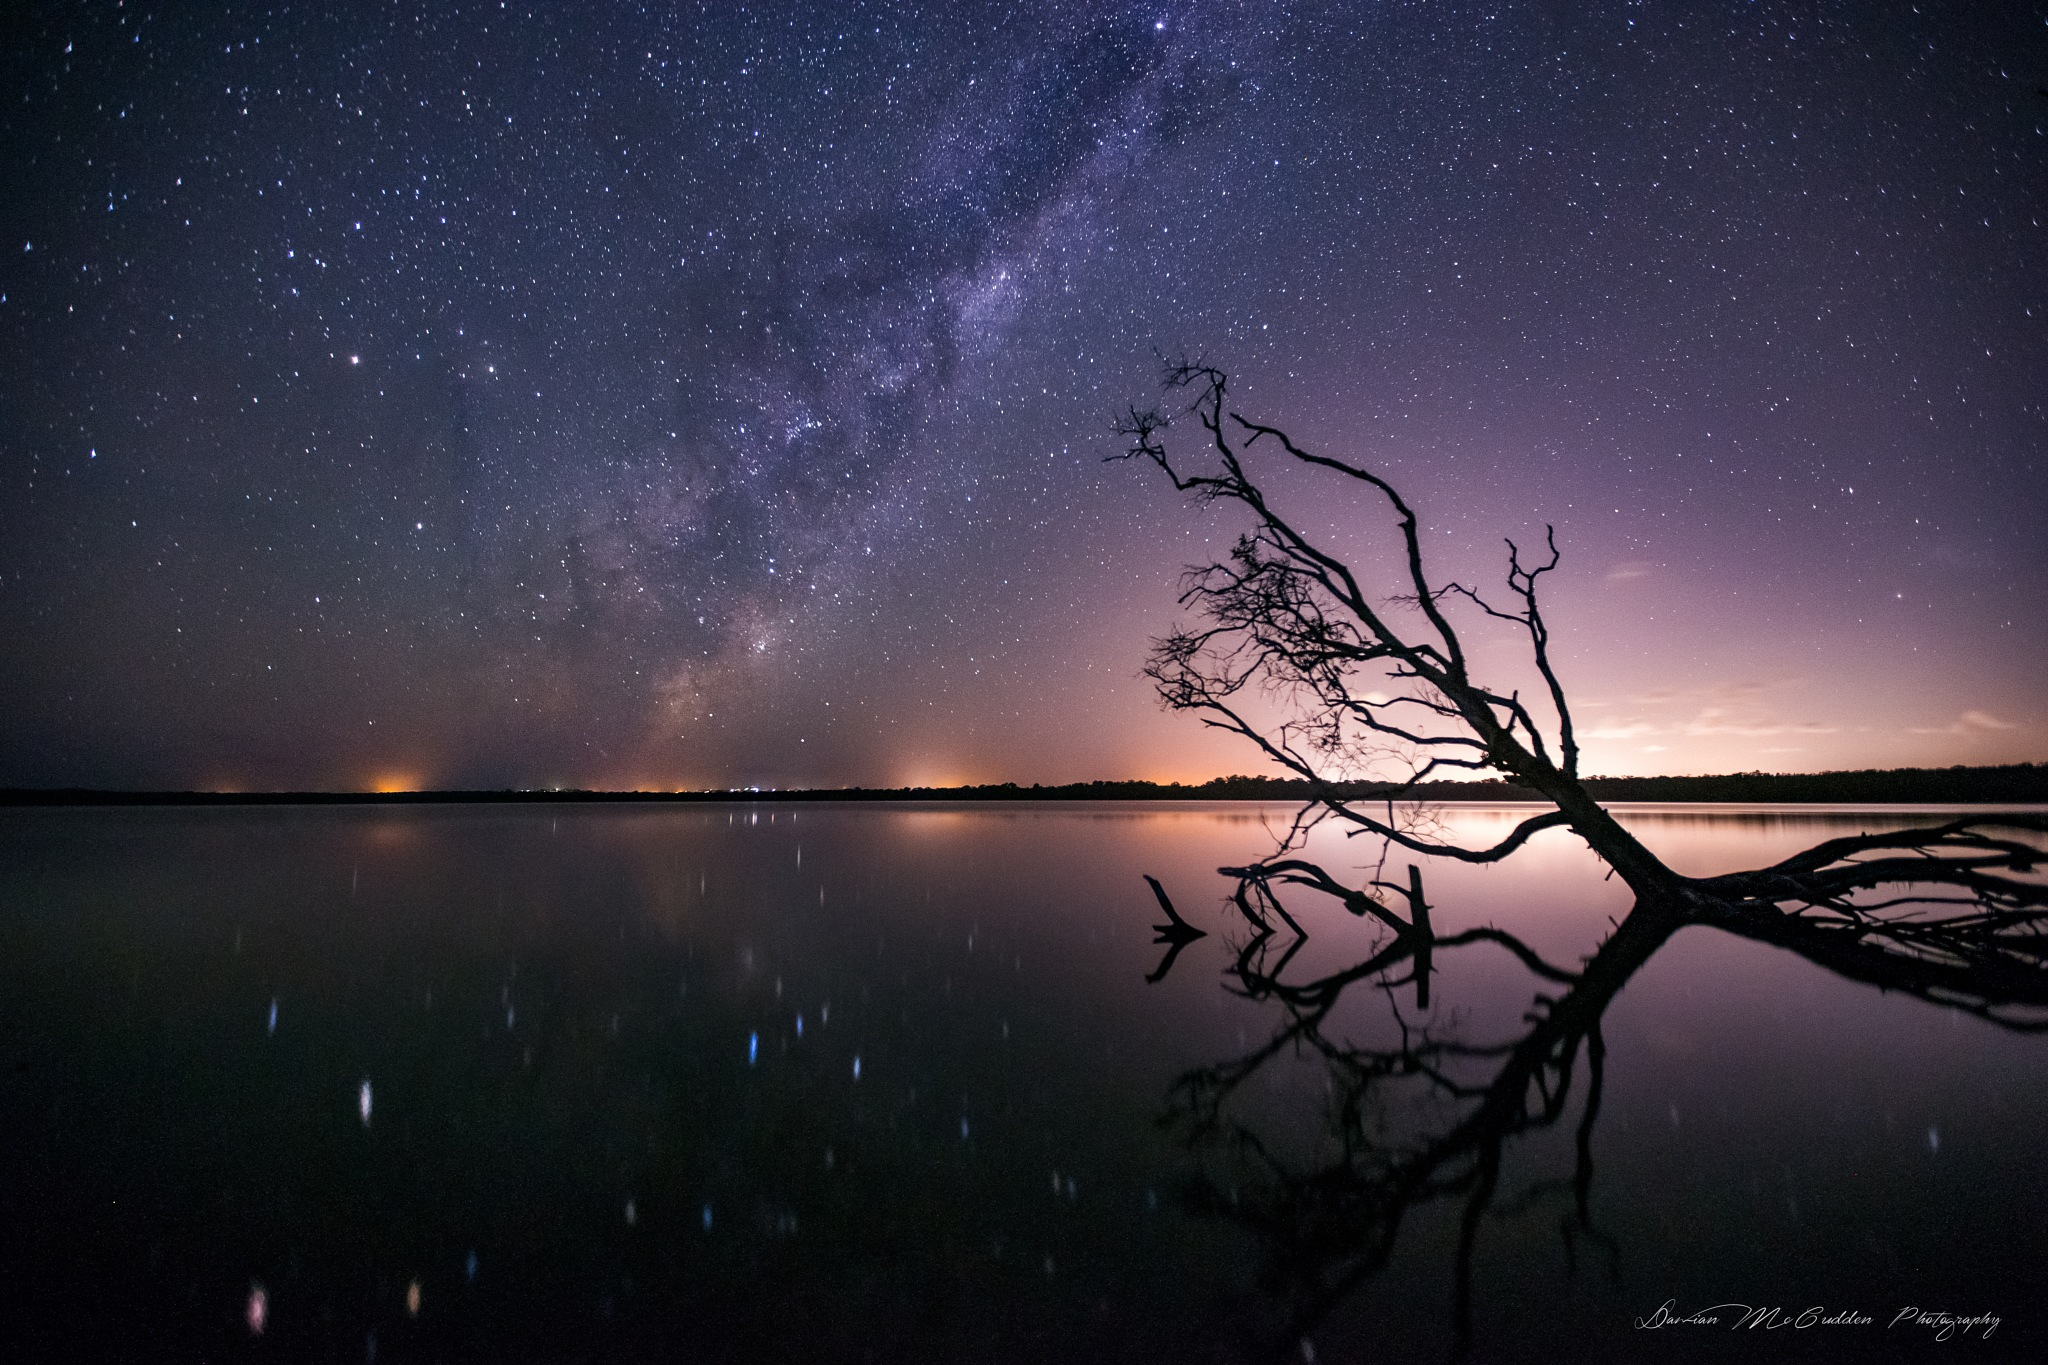 **Number 3** by Damian McCudden